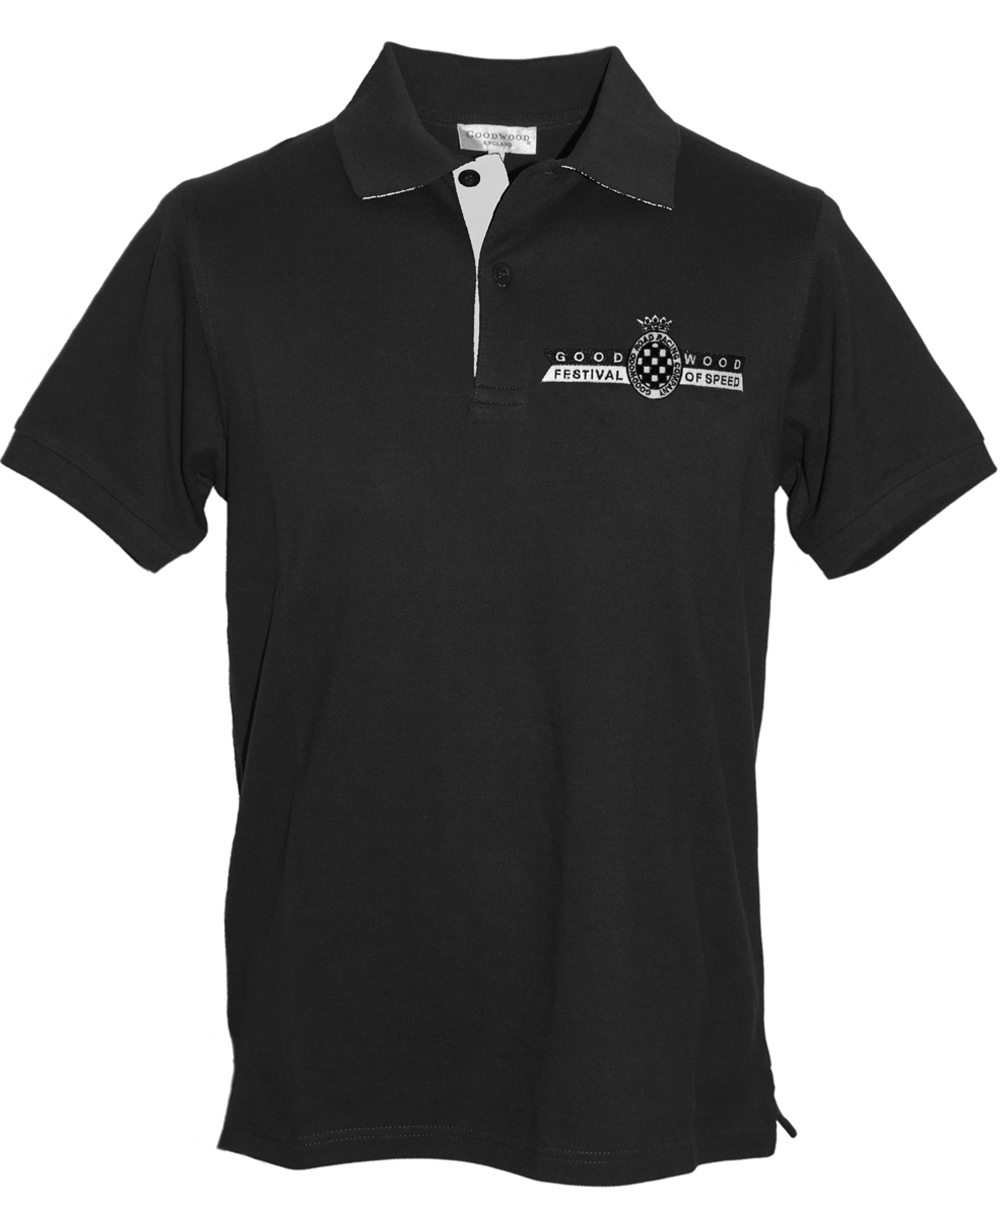 Black Festival Of Speed Logo Polo Shirt Mens By Goodwood